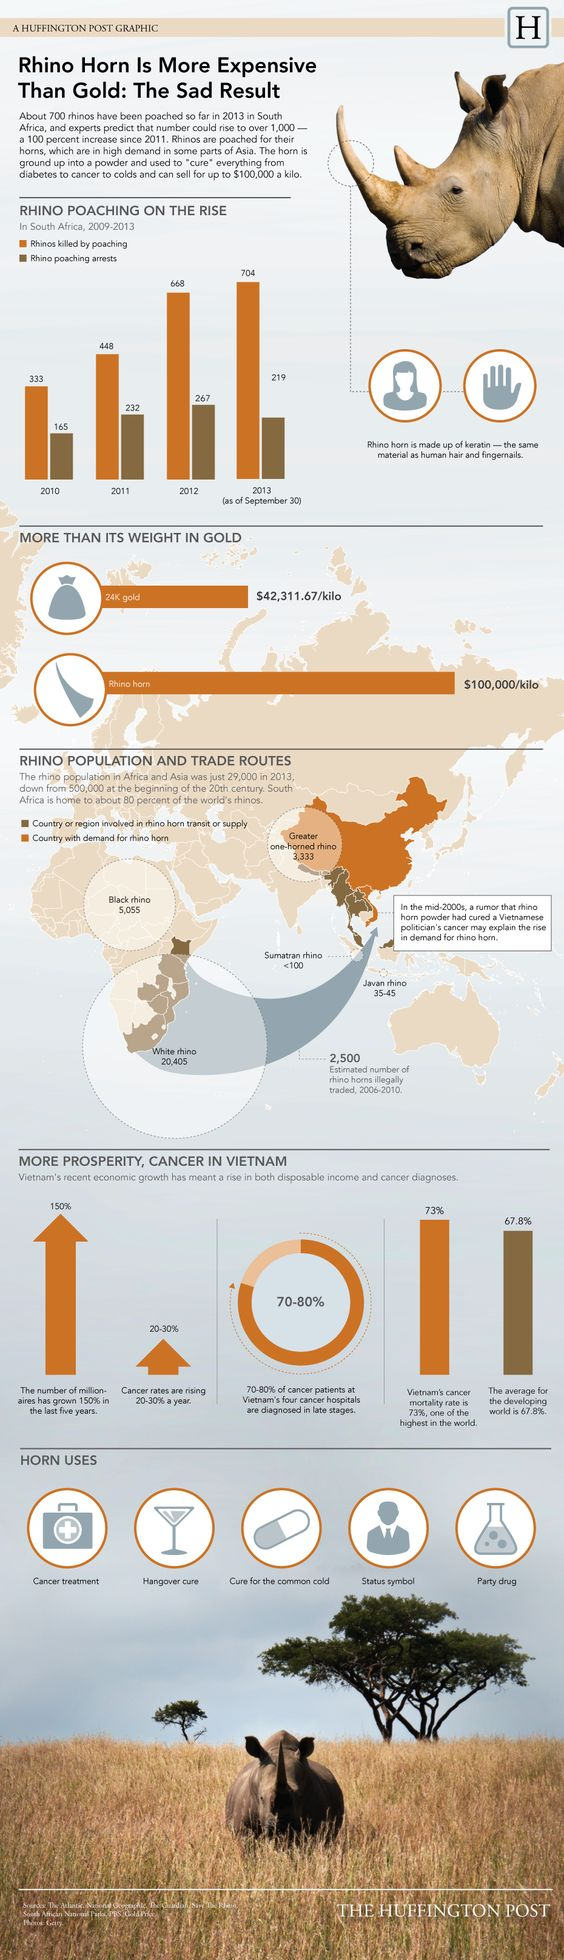 This Infographic Will Make You Realize Just How Bad Rhino Poaching Is